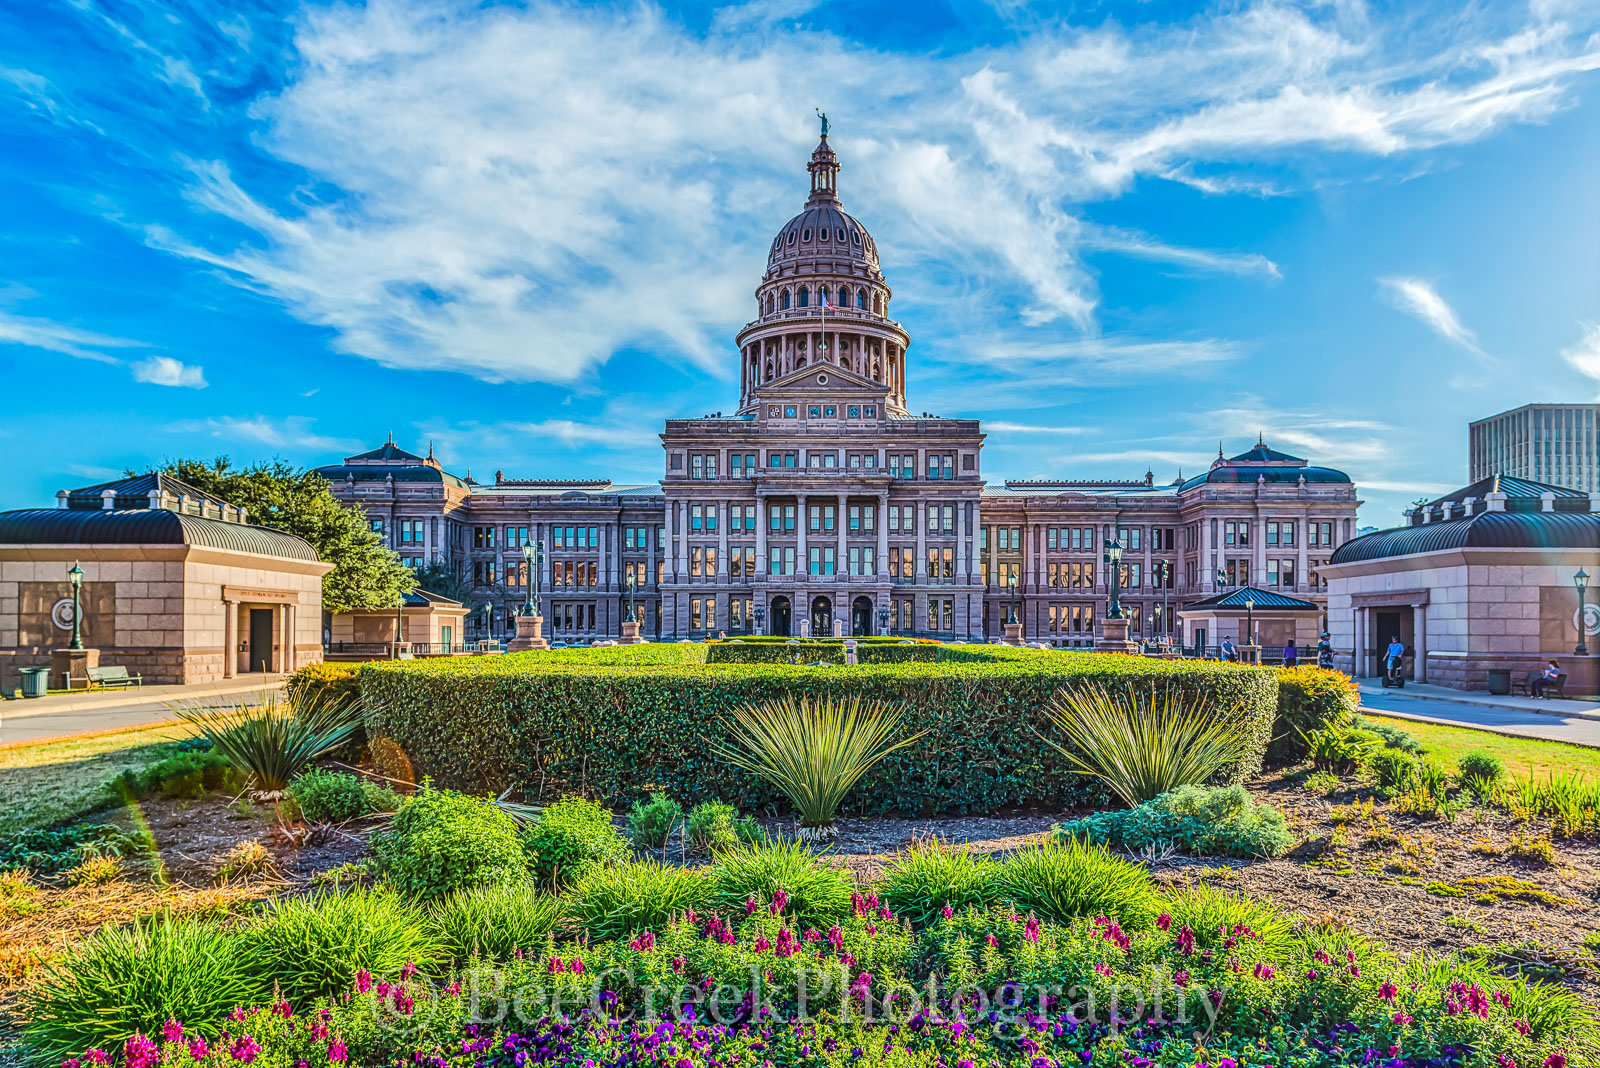 Austin, Capital, Capitol, Texas Capital, Texas Capitol, blue skies, cityscape, clouds, downtown, grounds, state capital, texas, photo